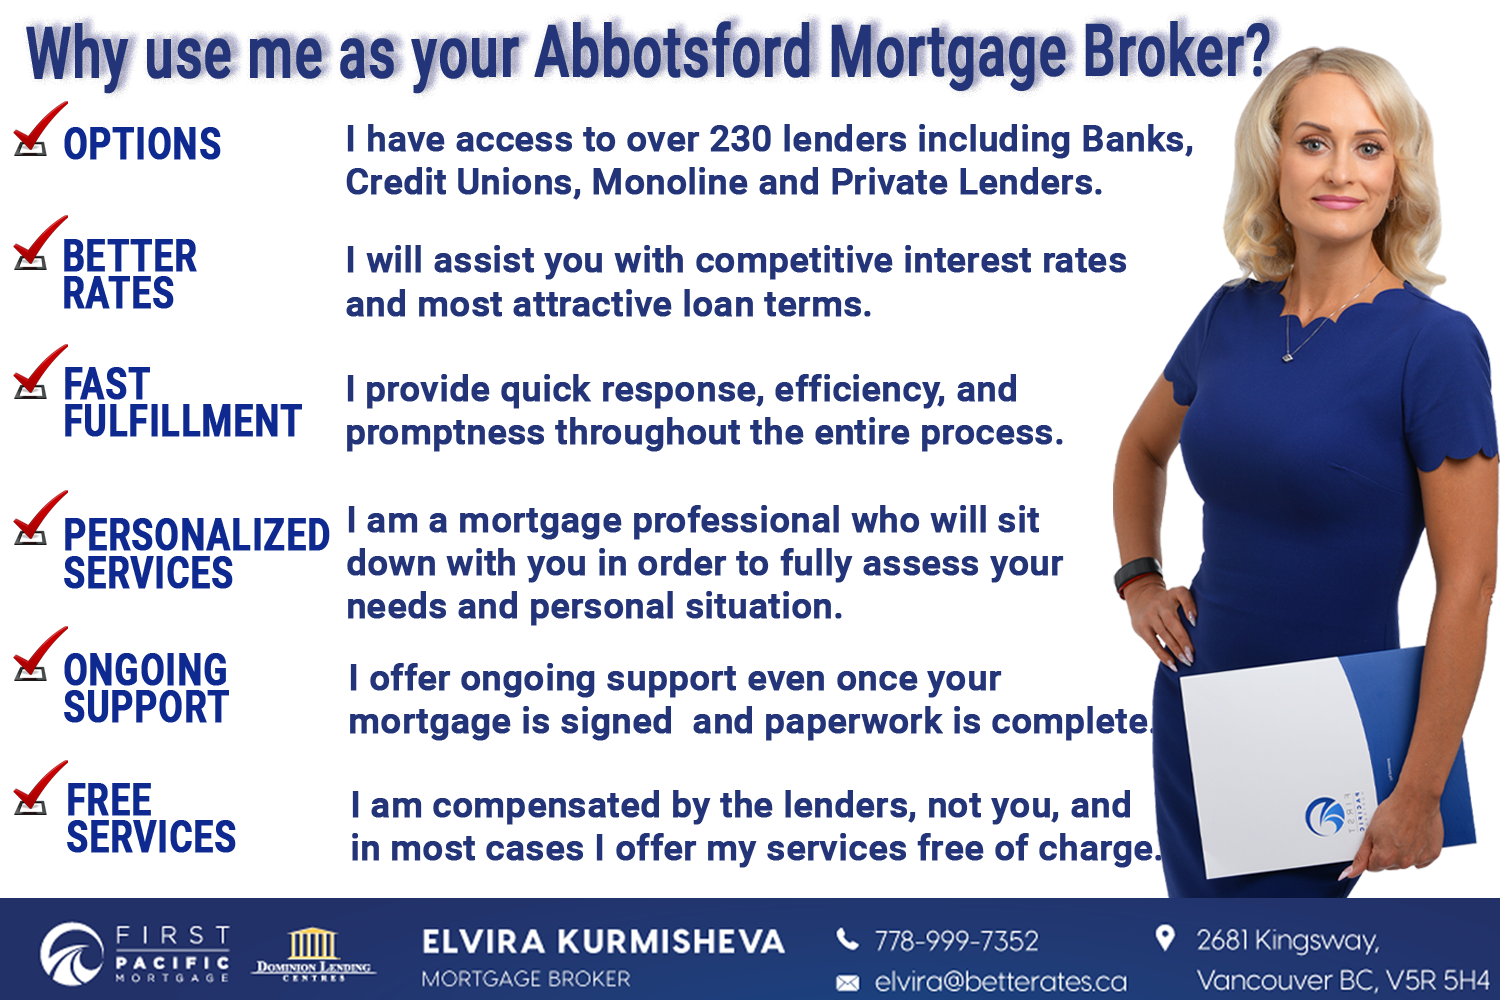 Picture of Abbotsford mortgage broker